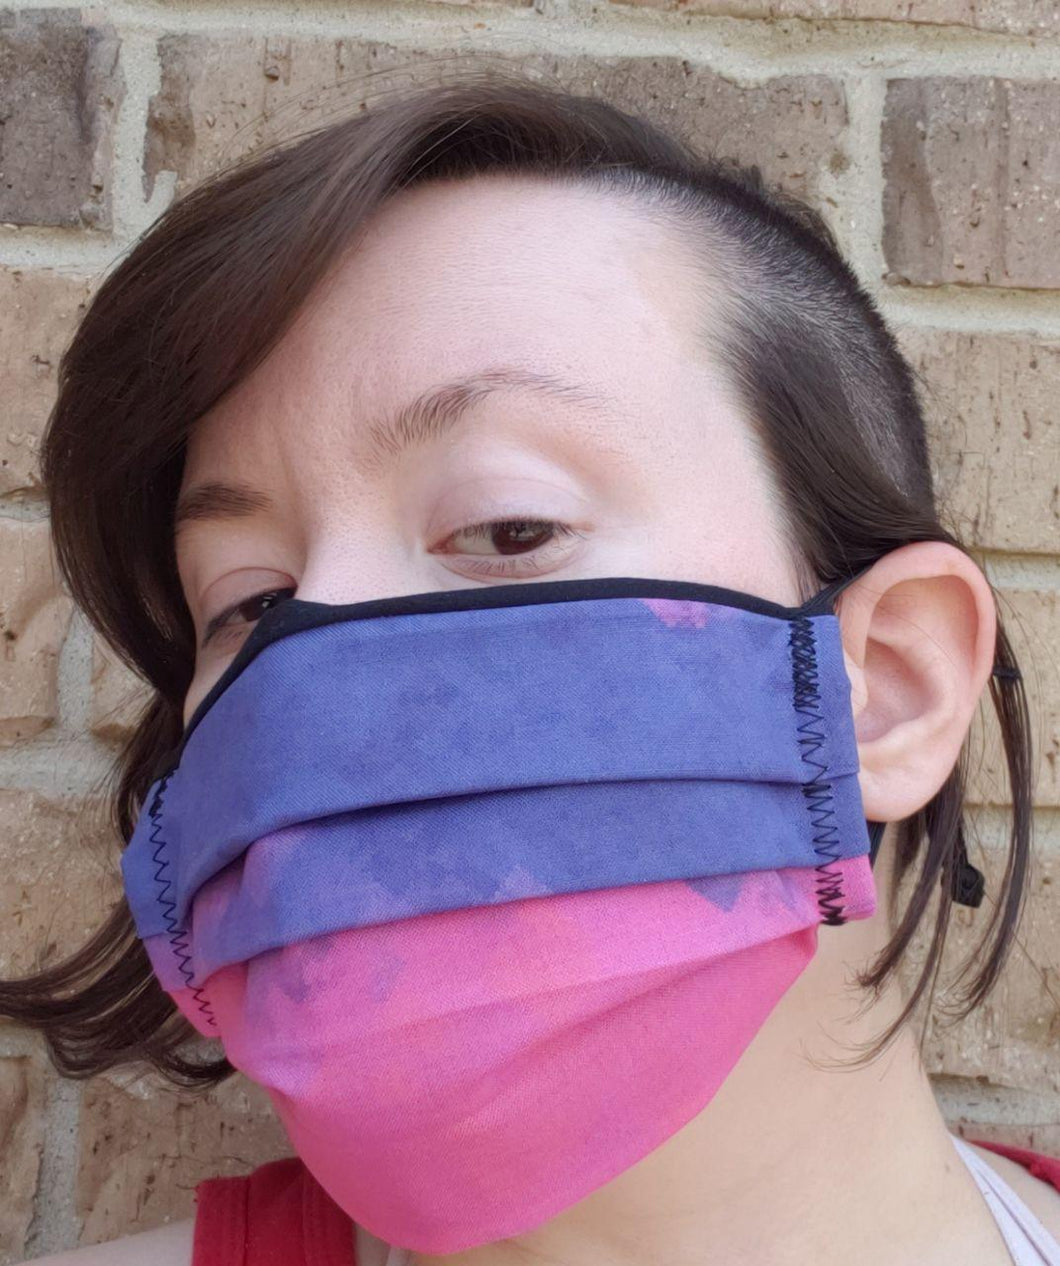 Twilight Bisexual Pixel Pride Face Mask - Adjustable Sizing